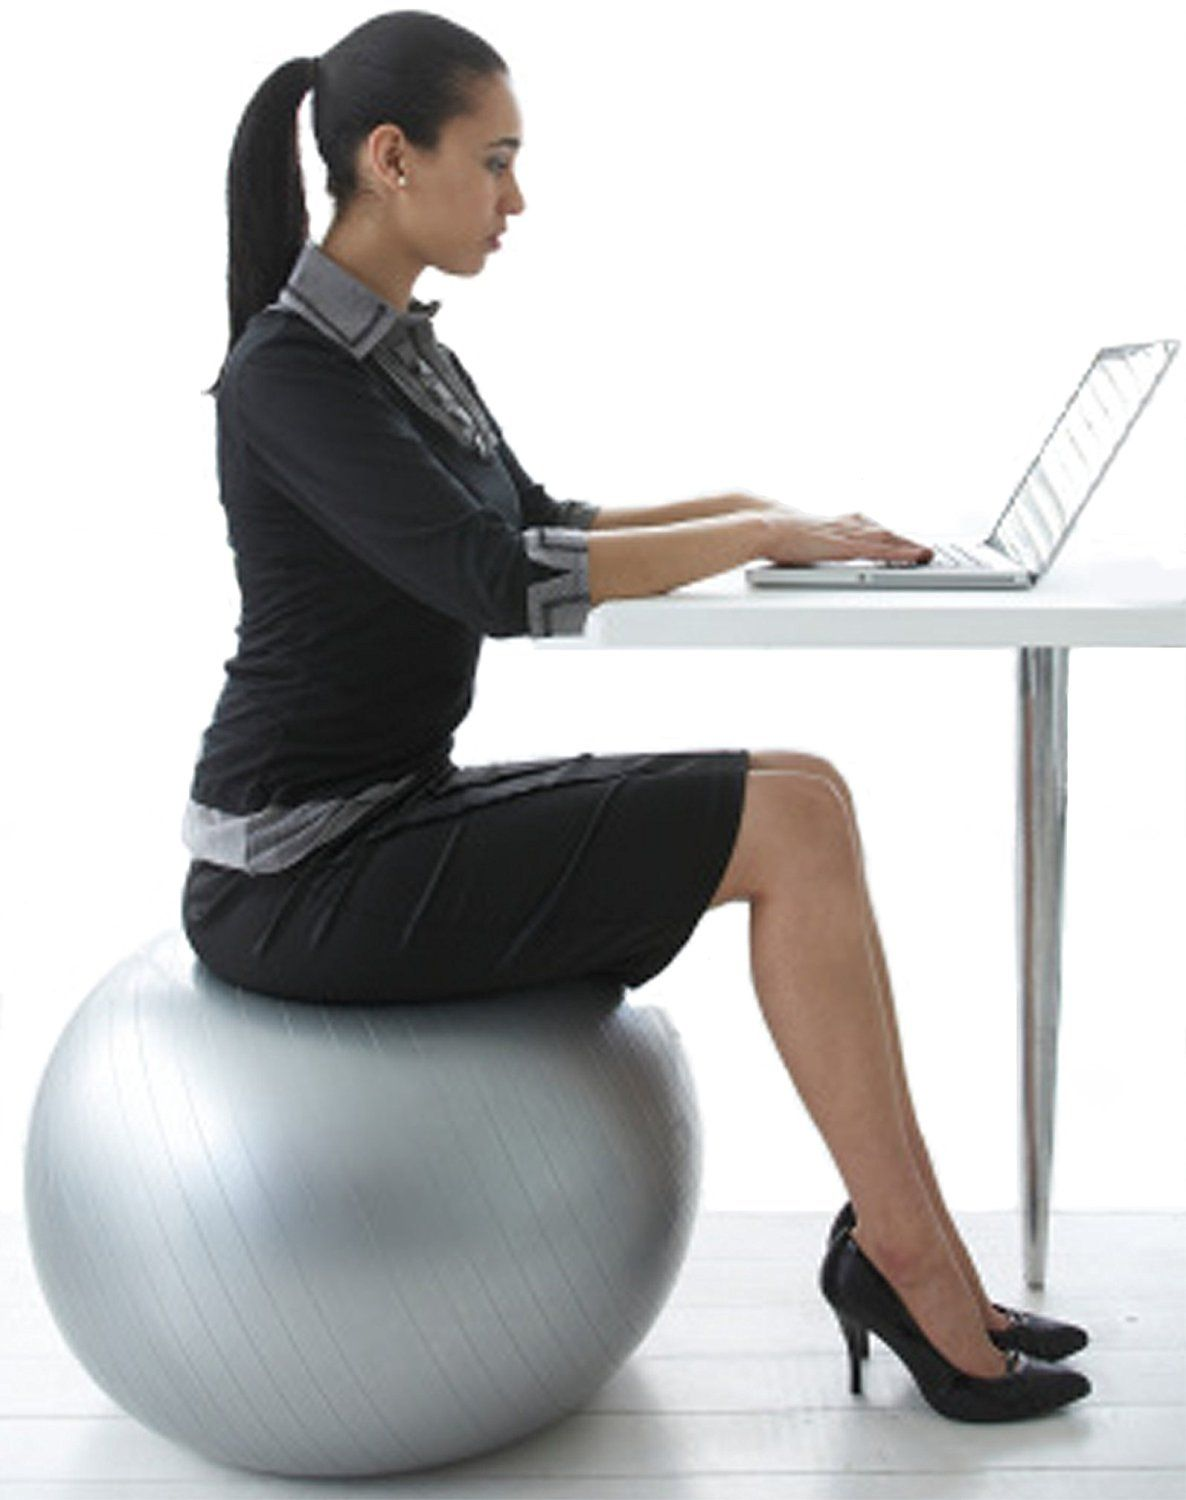 Pilates Ball Chair Yoga Ball Chairs Balance Ball For Stability Guide And Review